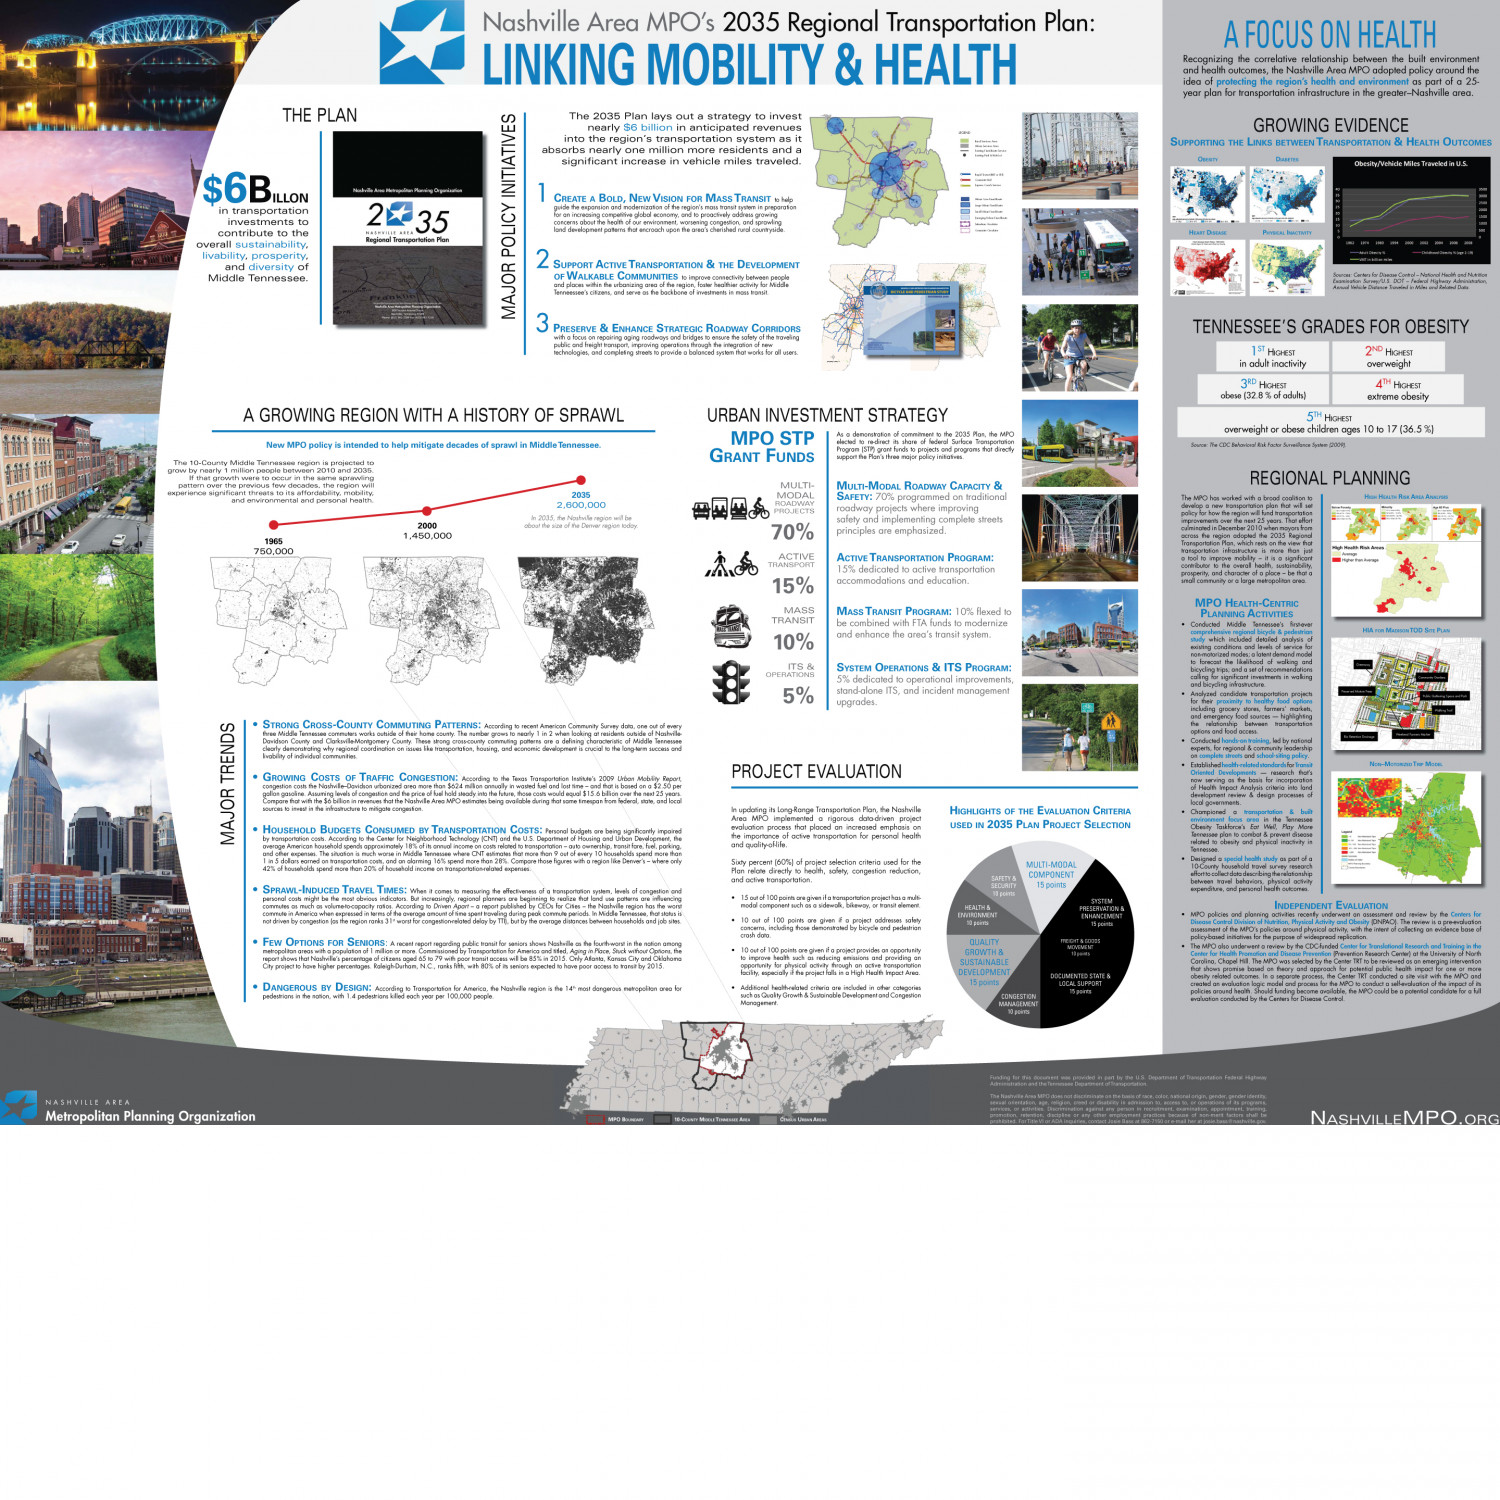 Linking Mobility & Health Infographic